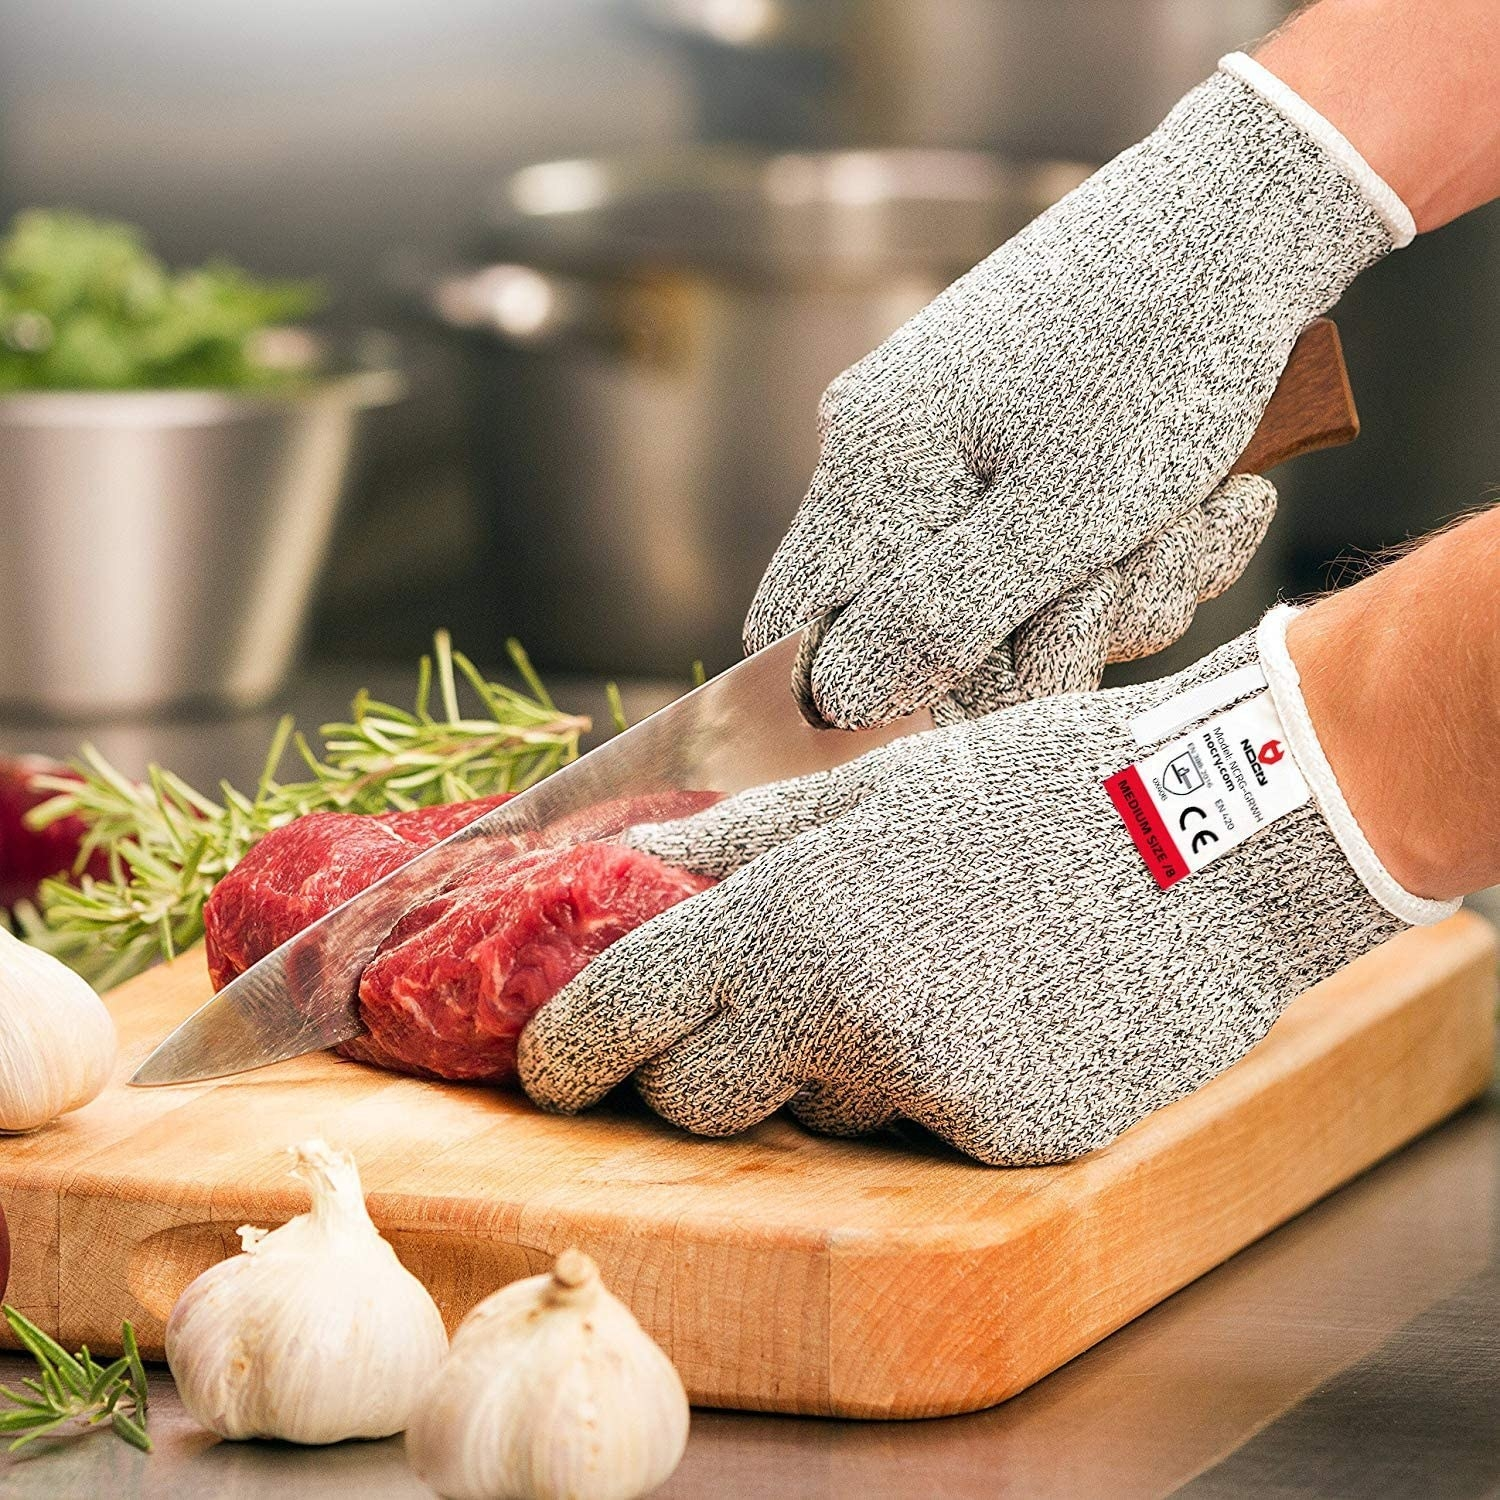 A model cutting meat with the gloves on